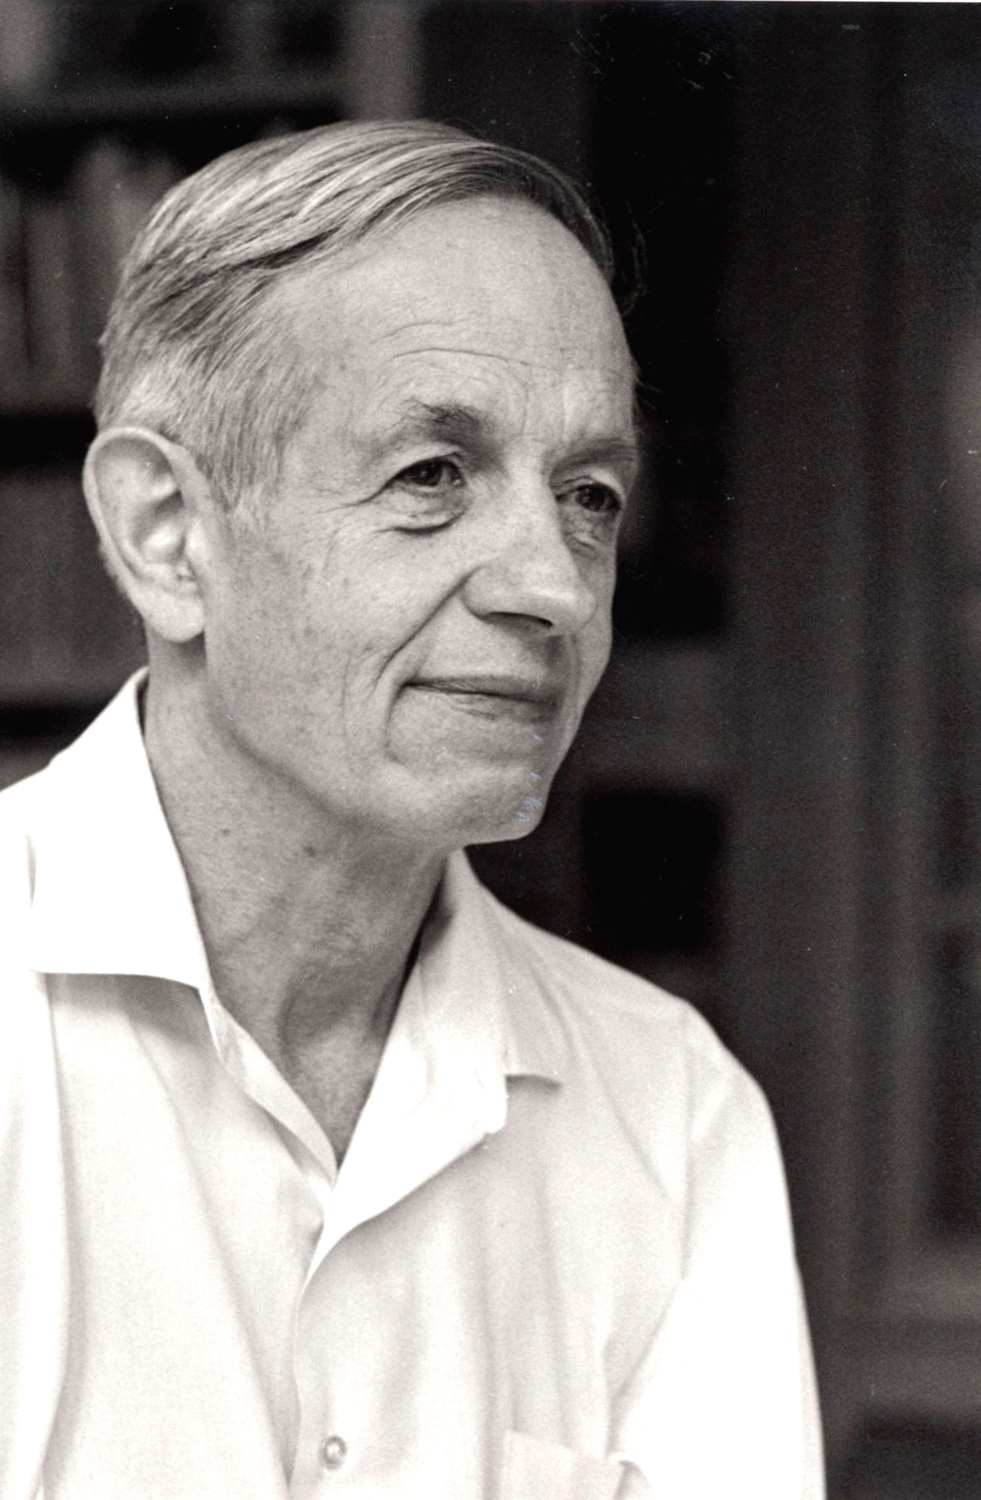 John Forbes Nash, Jr., the schizophrenic mathematician who won a Nobel Prize for economics and whose life story was made into the Academy Award-nominated film 'A Beautiful Mind' is shown February 20, 2002 from a 1994 photo in Princeton, New Jersey. (Credit Robert P. Matthews/Princeton University/Getty Images)